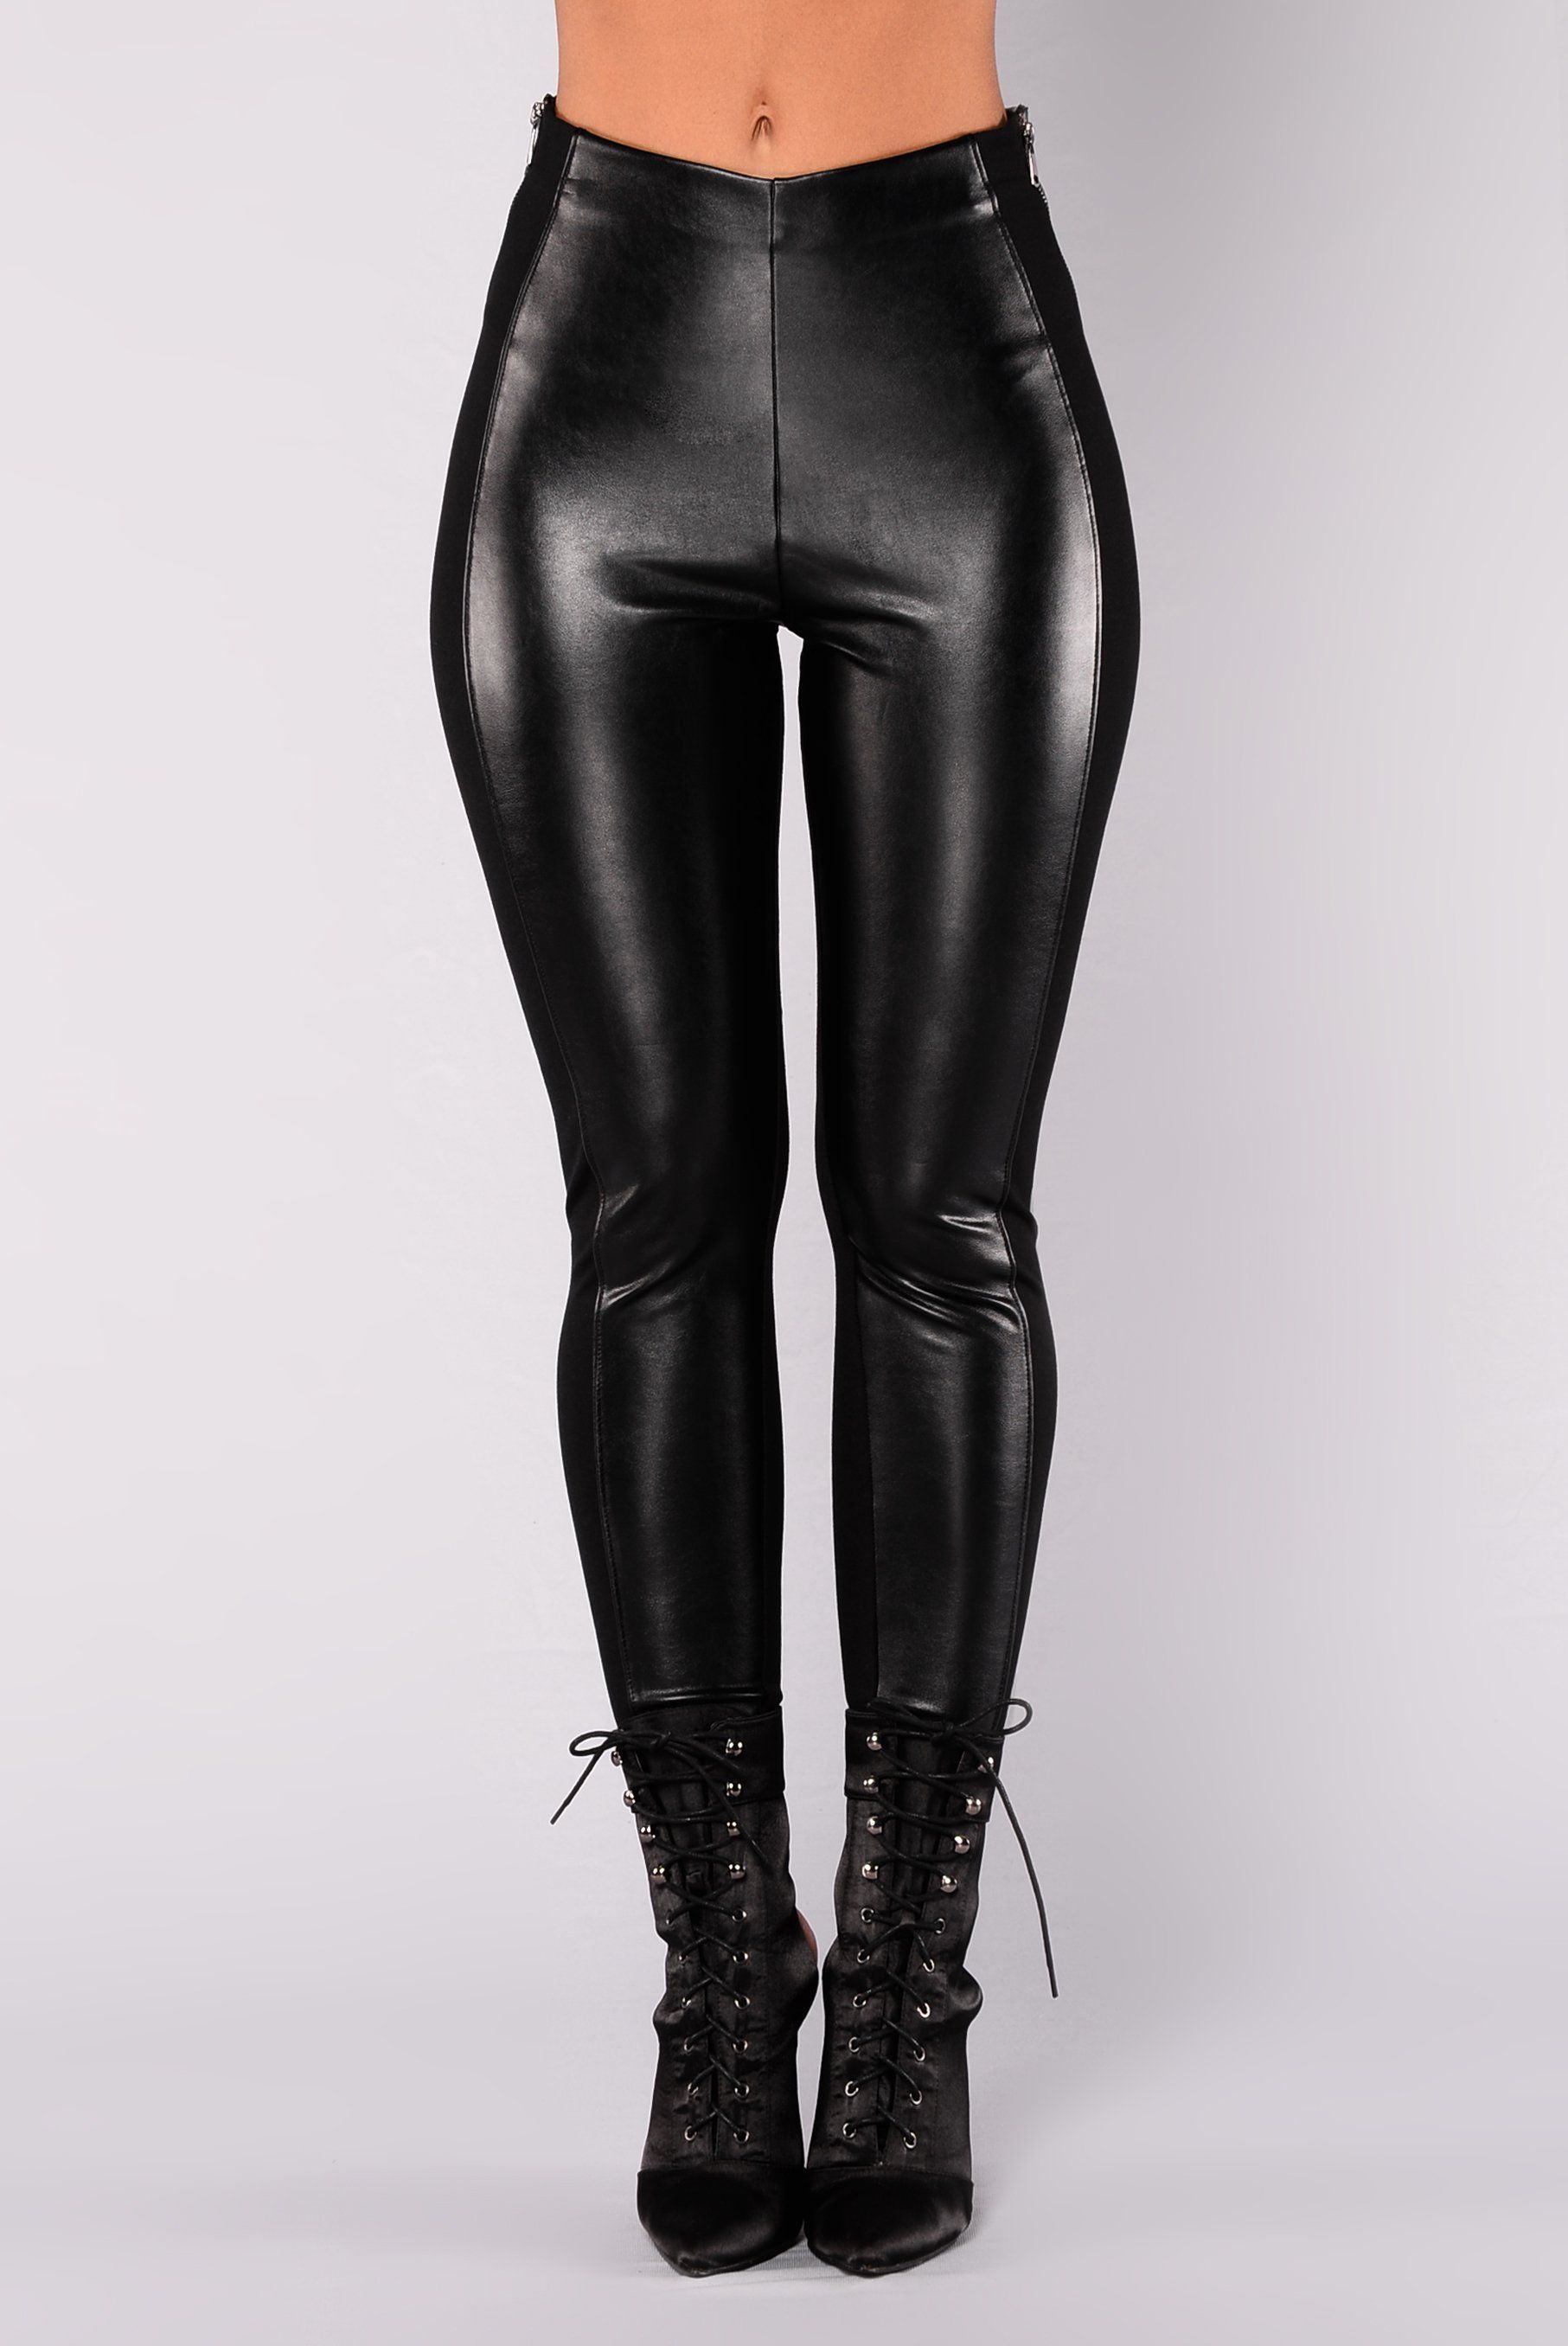 312b2d52ba871 Available In Black High Rise Full Stretch Faux Leather Leggings Front  Zipper Wrap Around Detail Self: 68% Rayon 27% Nylon 5% Spandex Contrast:  45% ...